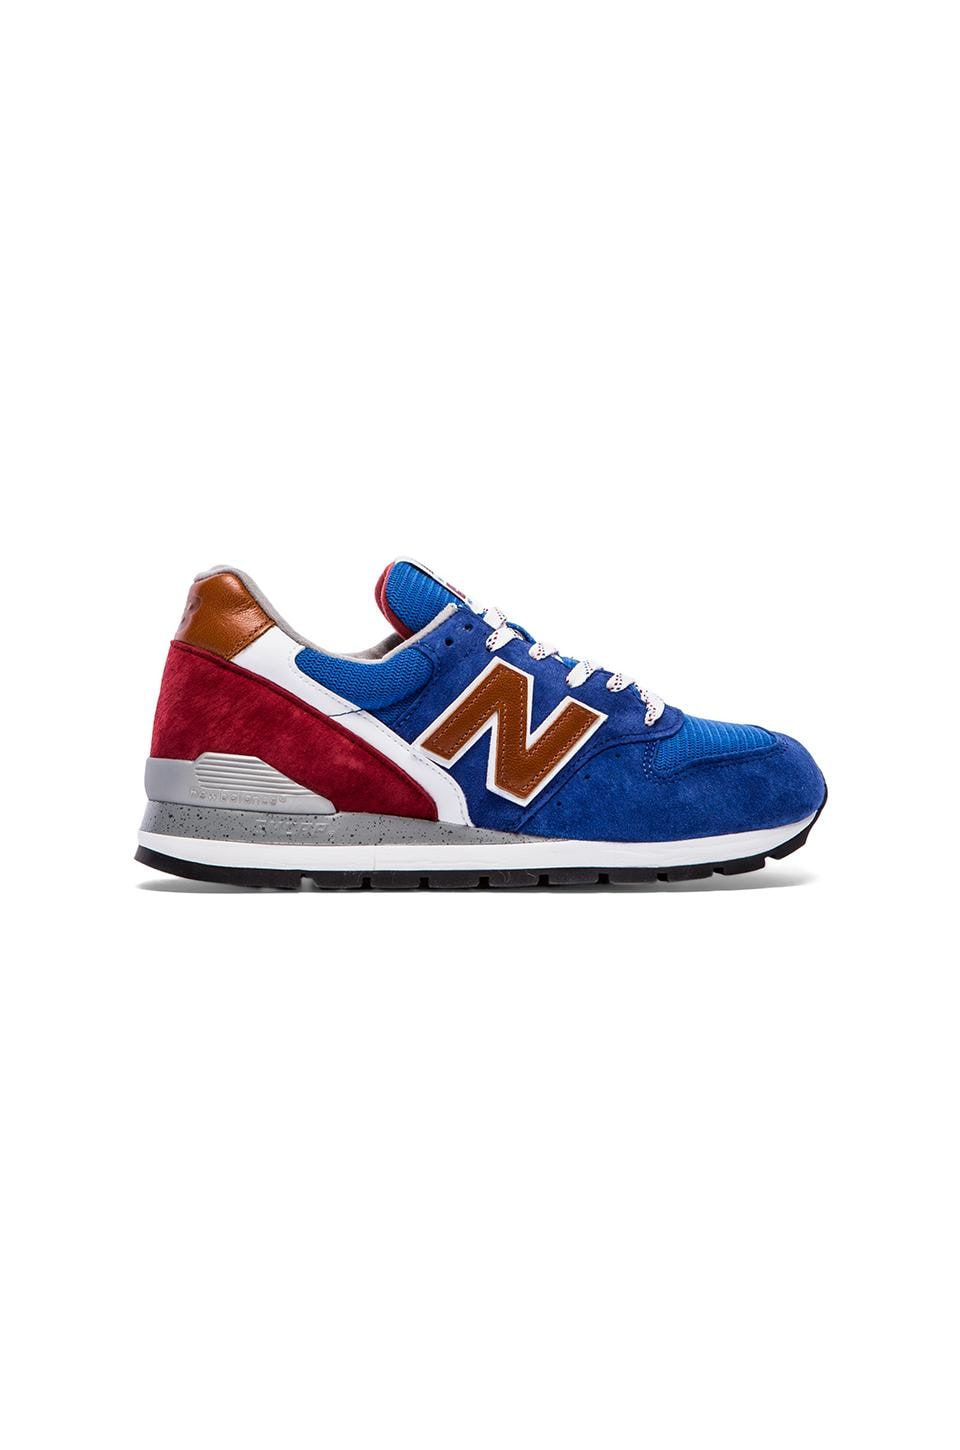 New Balance Made in USA M996 in Blue & Red